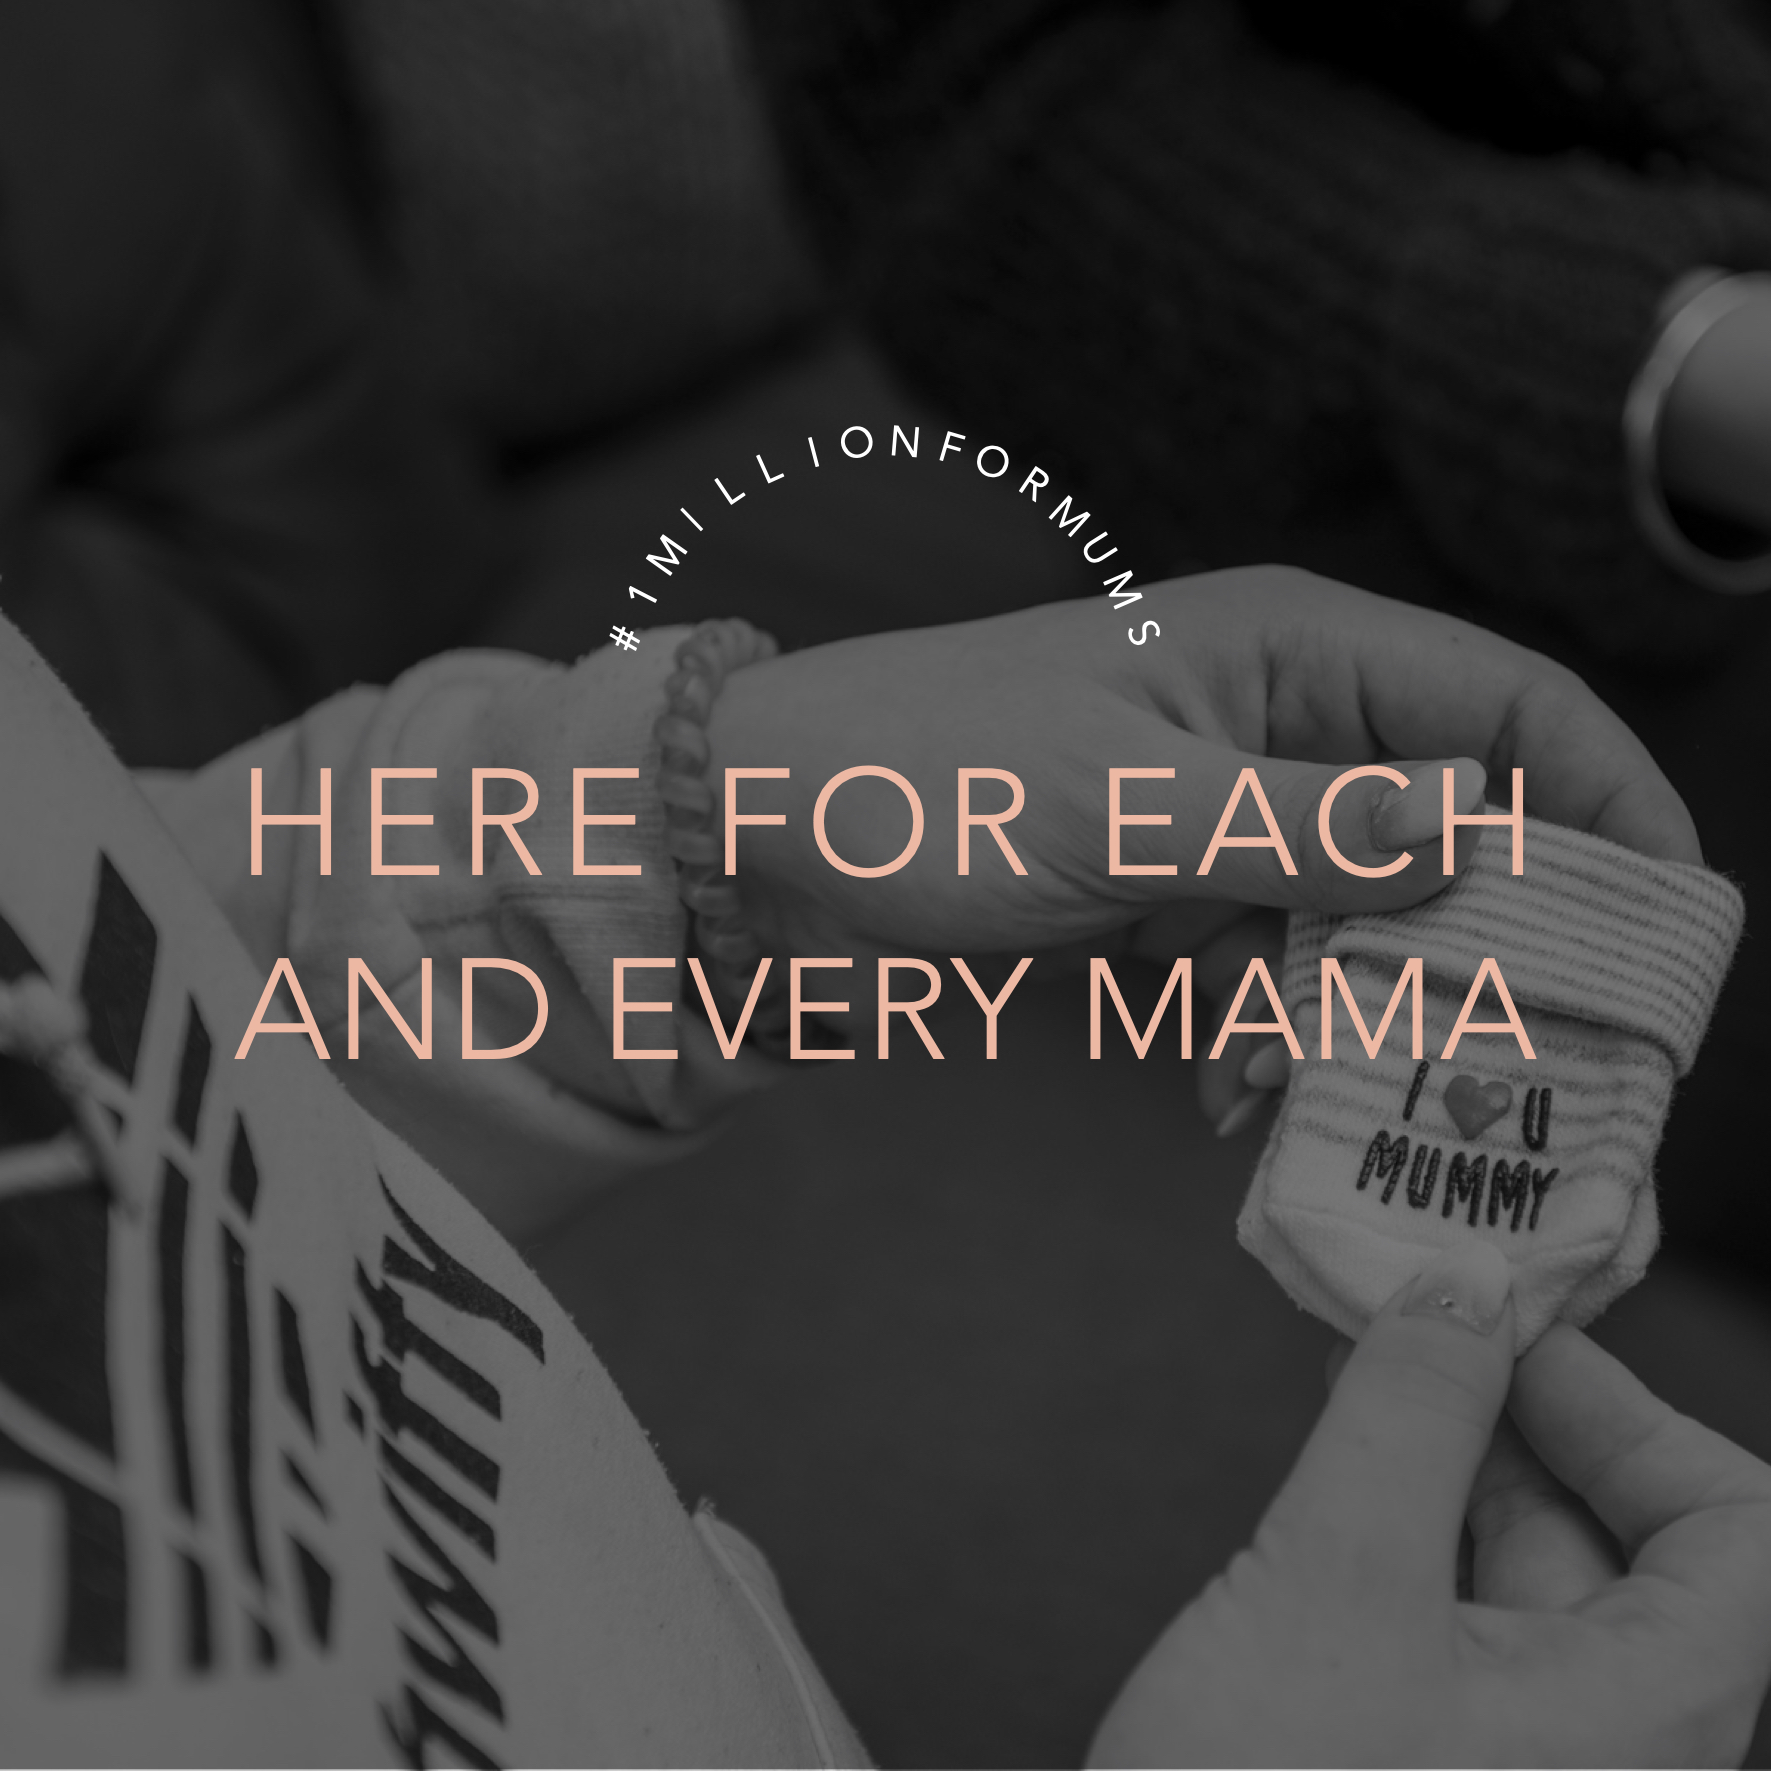 1M4M_SM_square_'here_for_each___every_mama'.jpg